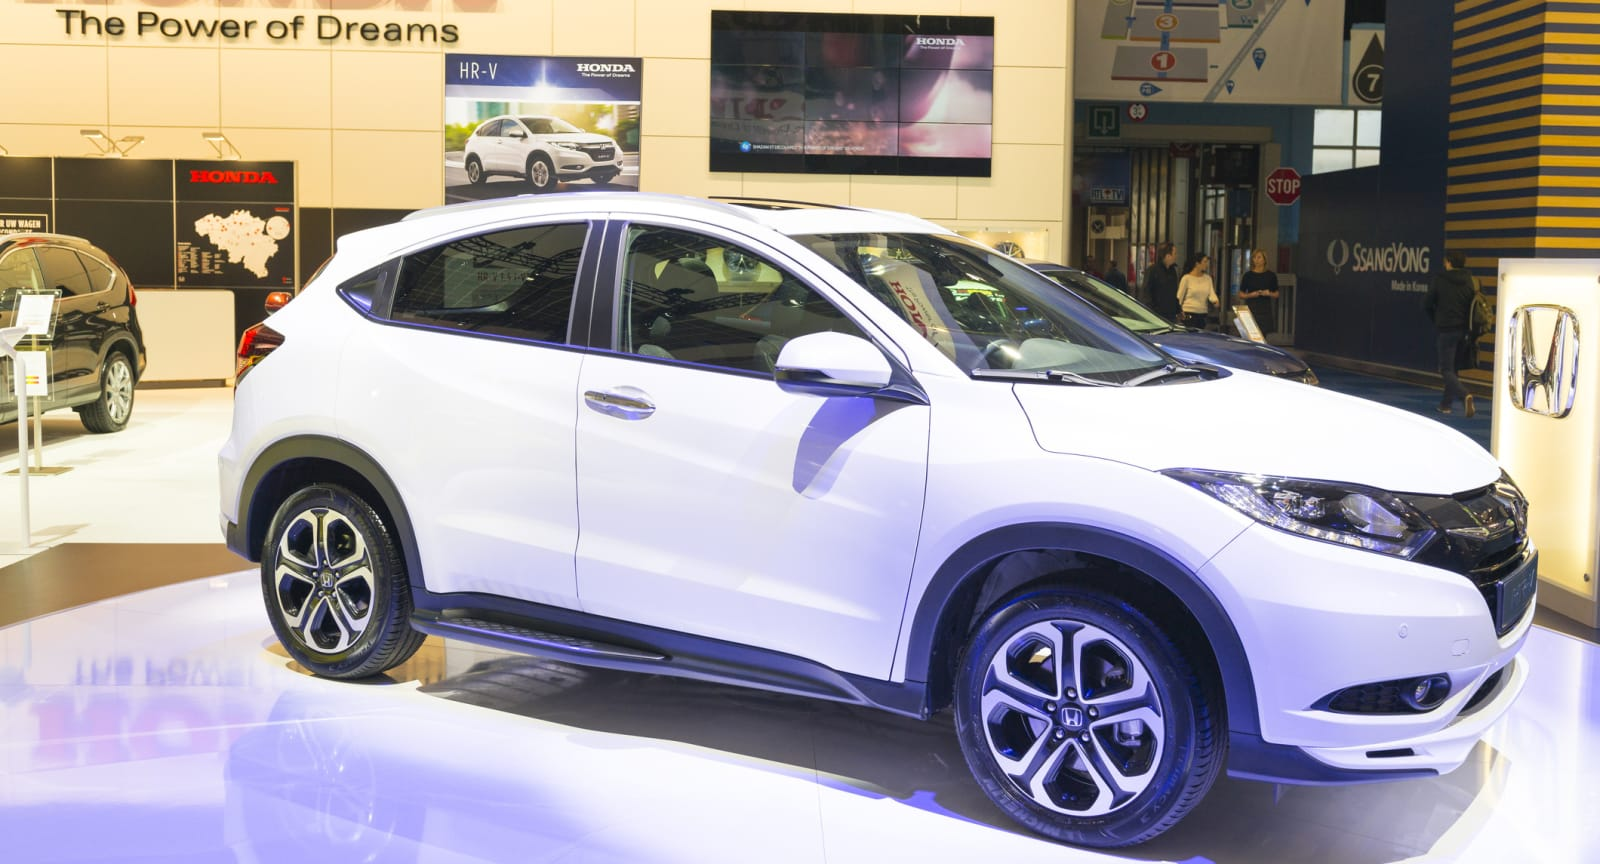 This photo shows a Honda HR-V in a showroom.